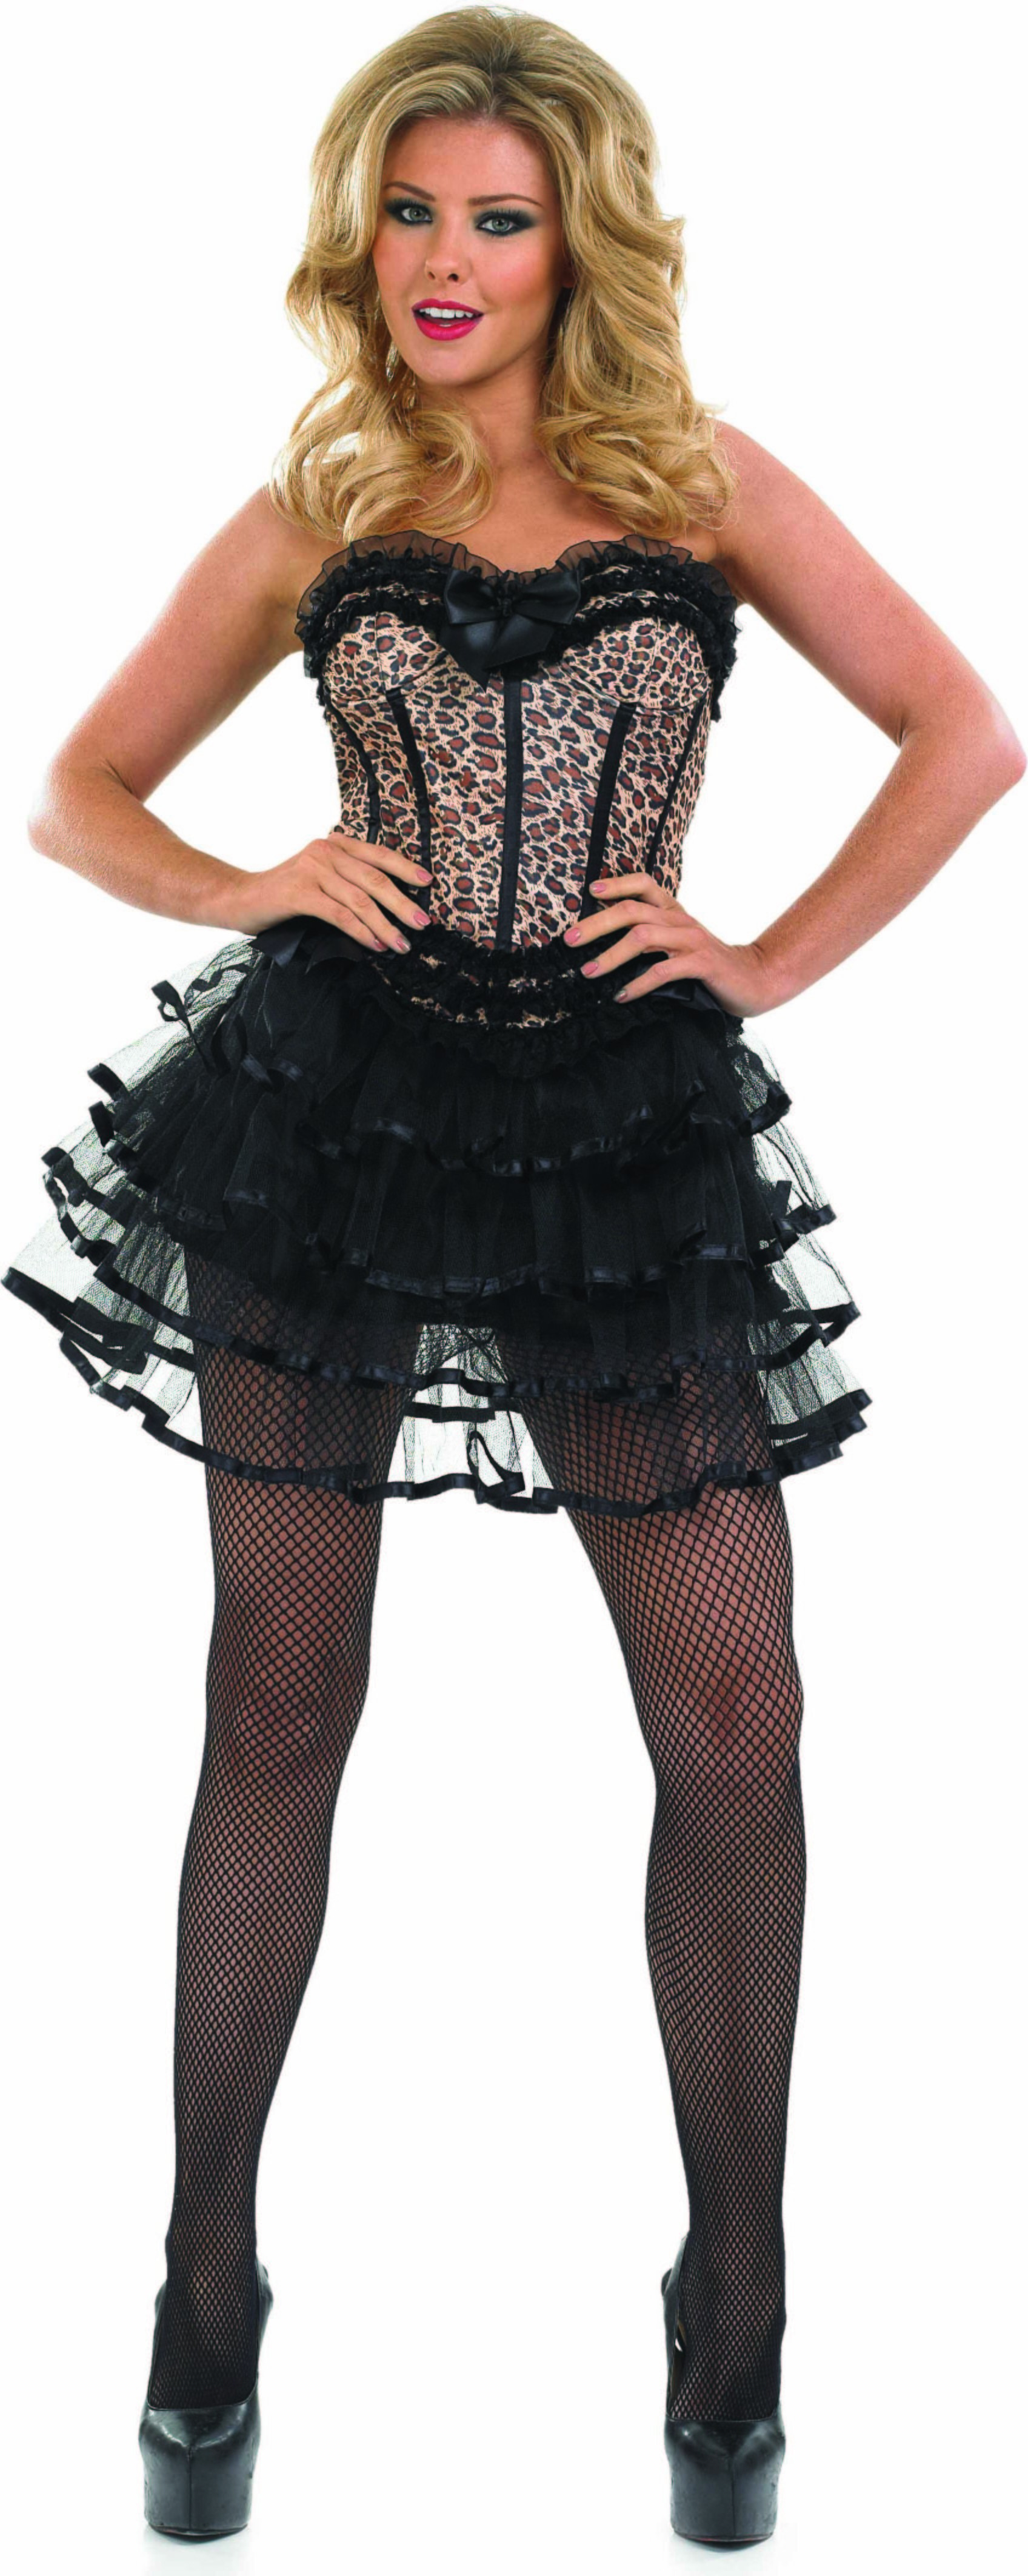 Ladies Leopard Corset & Layered Tutu Tutus - (Brown)